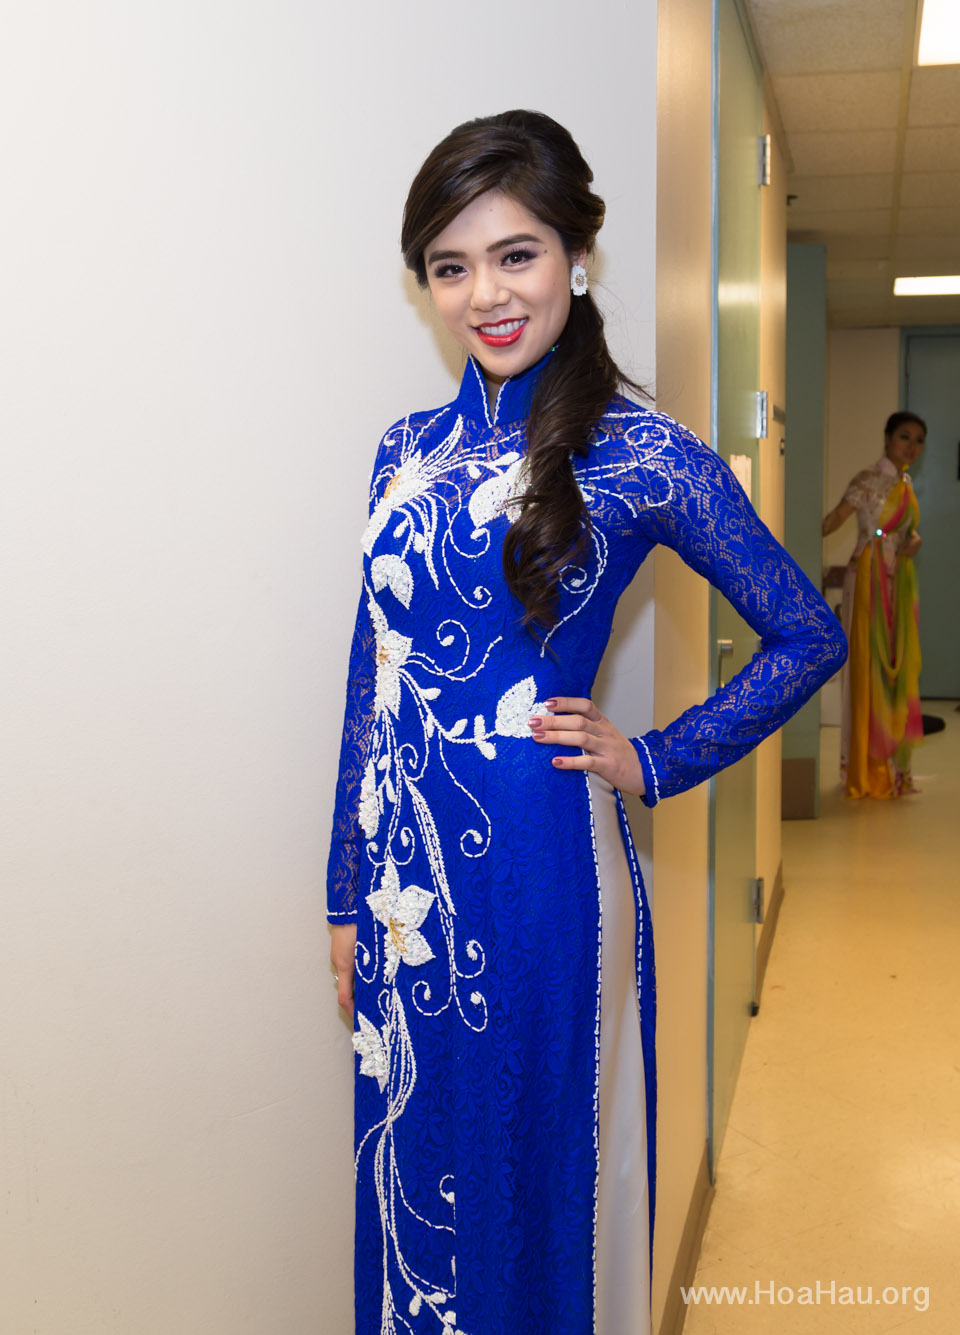 Miss Vietnam of Northern California 2014 - Hoa Hau Ao Dai Bac Cali 2014 - Behind the Scenes - Image 243